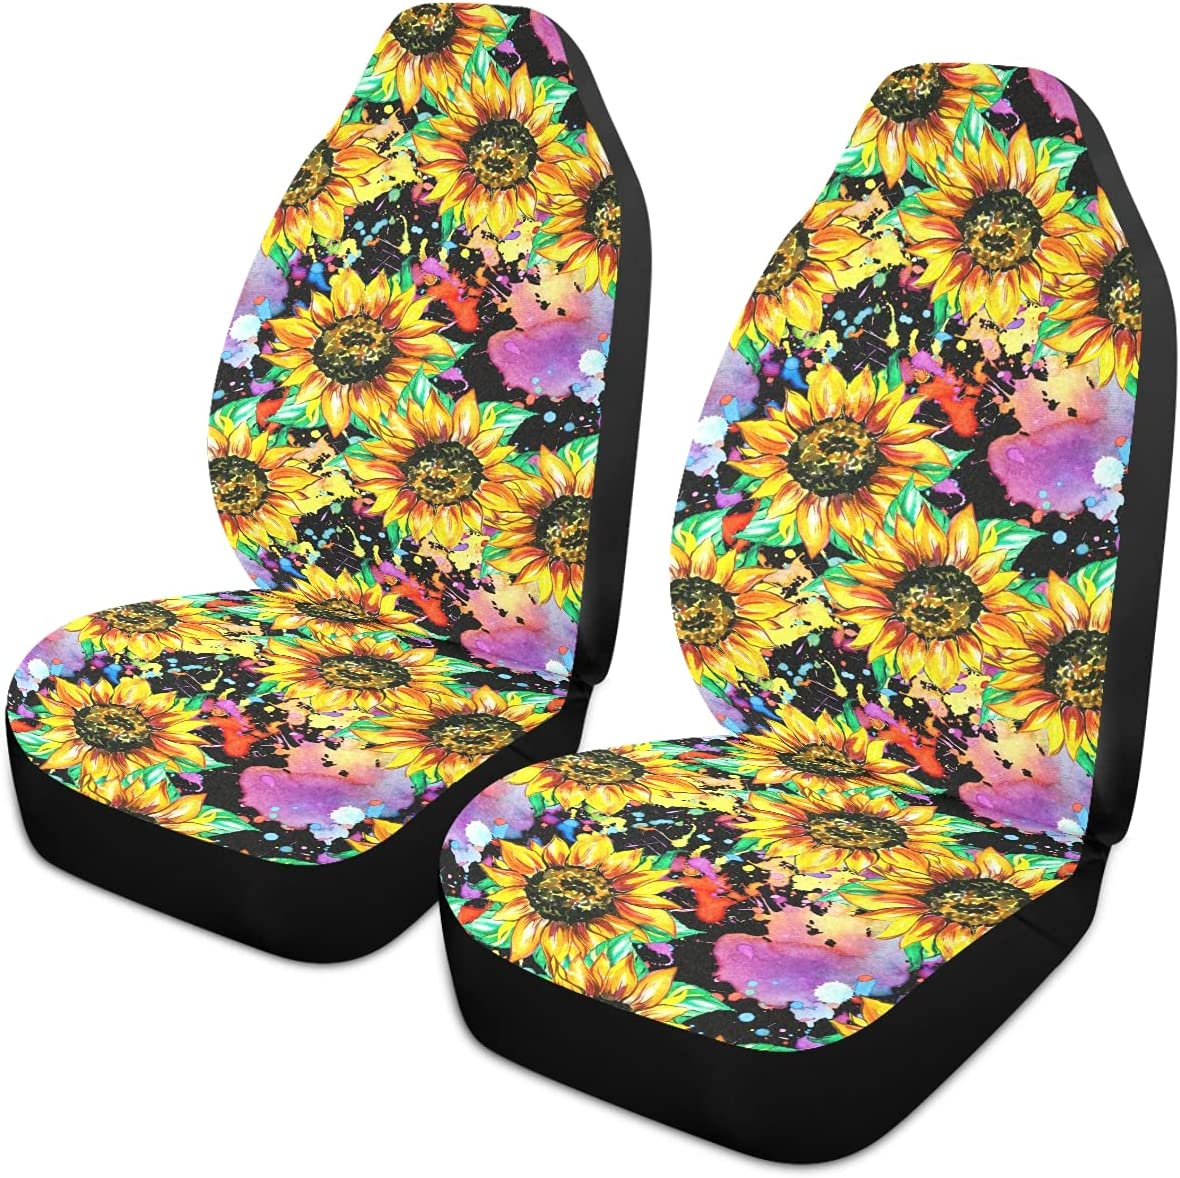 Spasm price Oarencol Sunflower Car Seat Covers Flowers Yellow Max 84% OFF Vintage Waterc